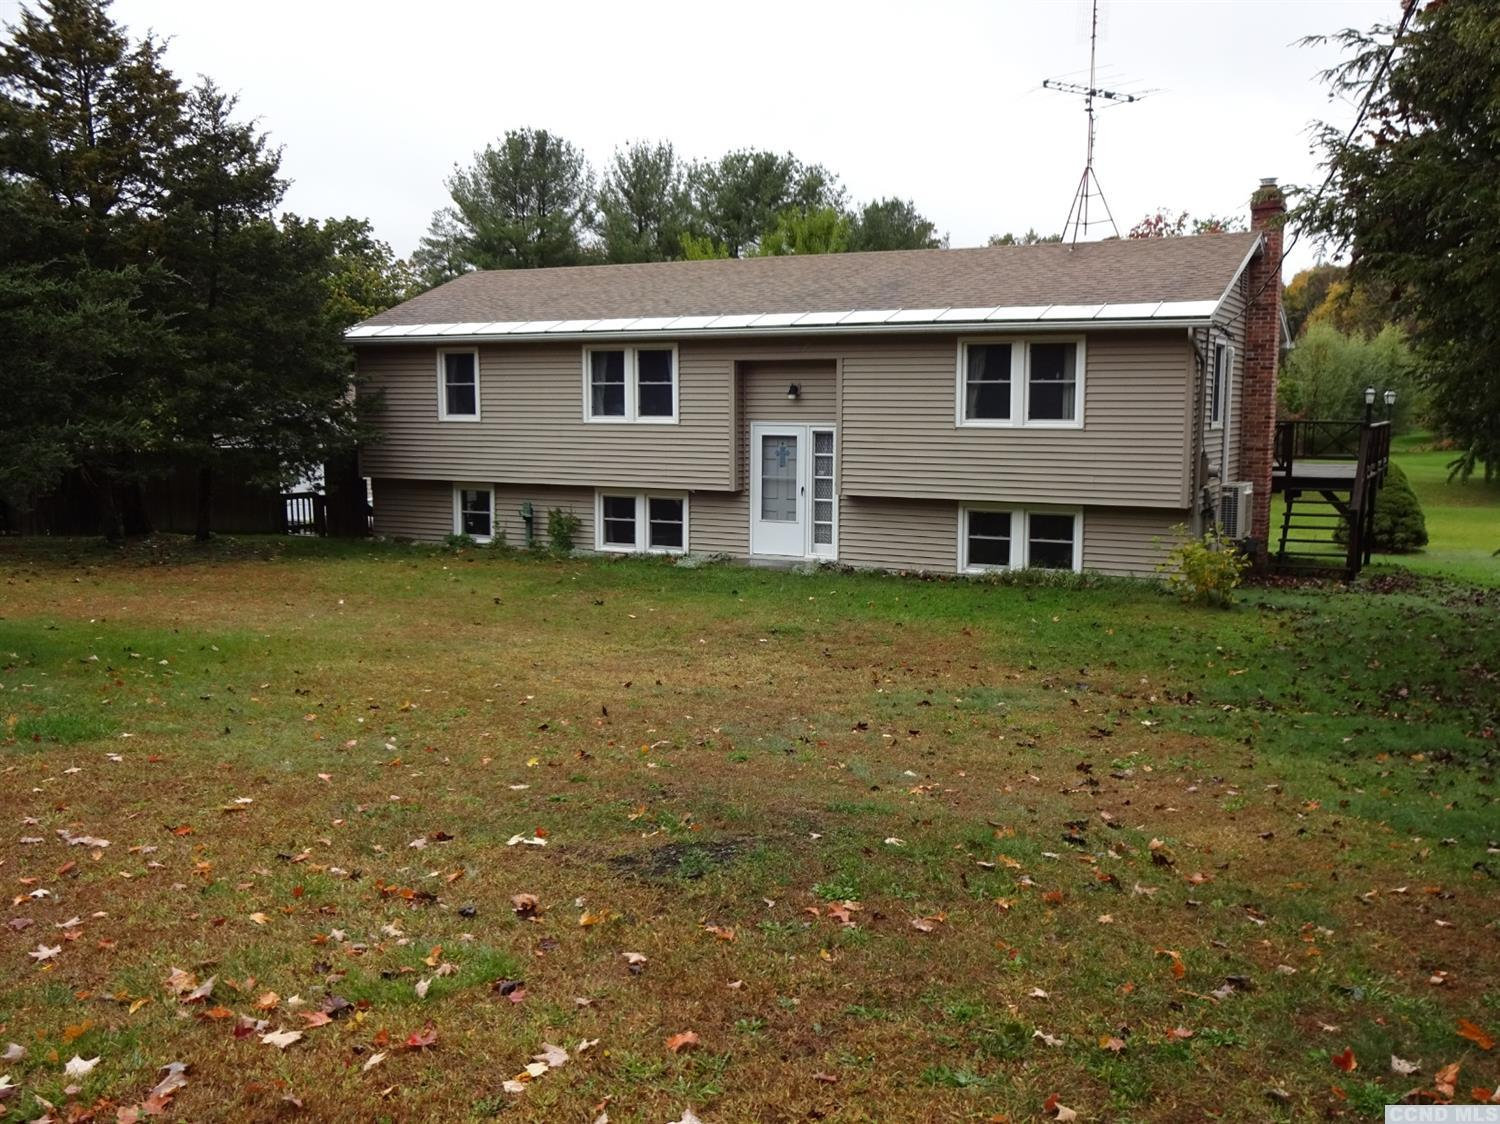 Owners built this home 45 years ago and keep it as neat & nice as when it was first built. This 3BR, 2BA Raised Ranch is in a wonderful location in the country and close to everything Columbia County has to offer. 10 mins. to Hudson & Amtrak, 30 mins. to Metro North. 2 hrs. to NYC.